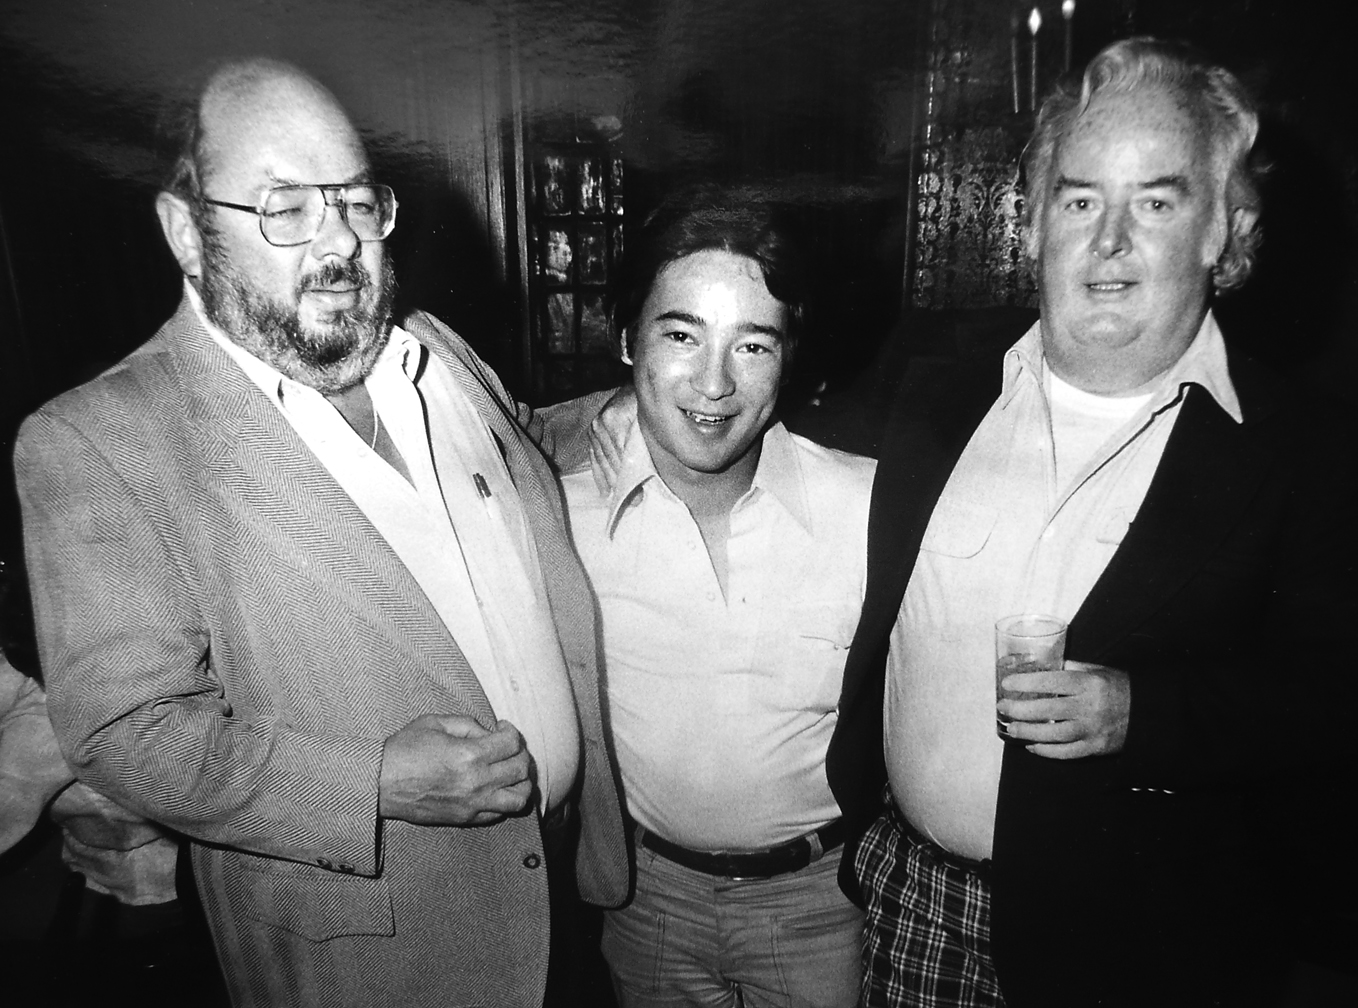 The Three Amigos: Jim Kenney (blitzed), myself, John Whelan (love those pants)